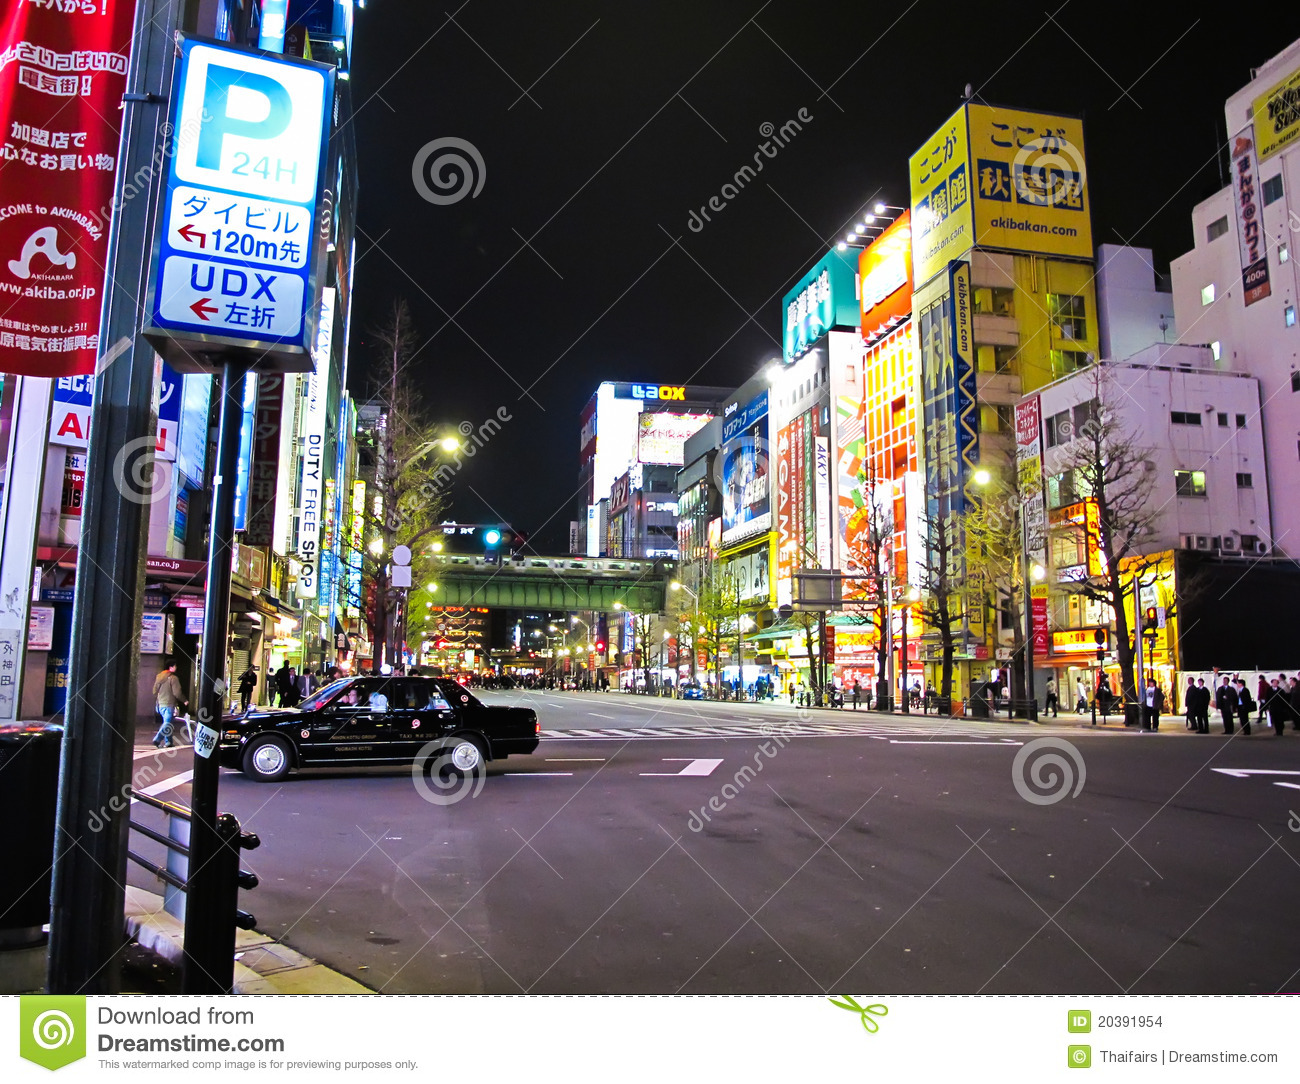 American Diner Wallpaper in addition 5645796947 moreover City Lights Background moreover Stock Photo Trams Buses And Traffic Between Walls Of Neon Lights On Nathan Road 1317502 also Photography. on urban neon car lights